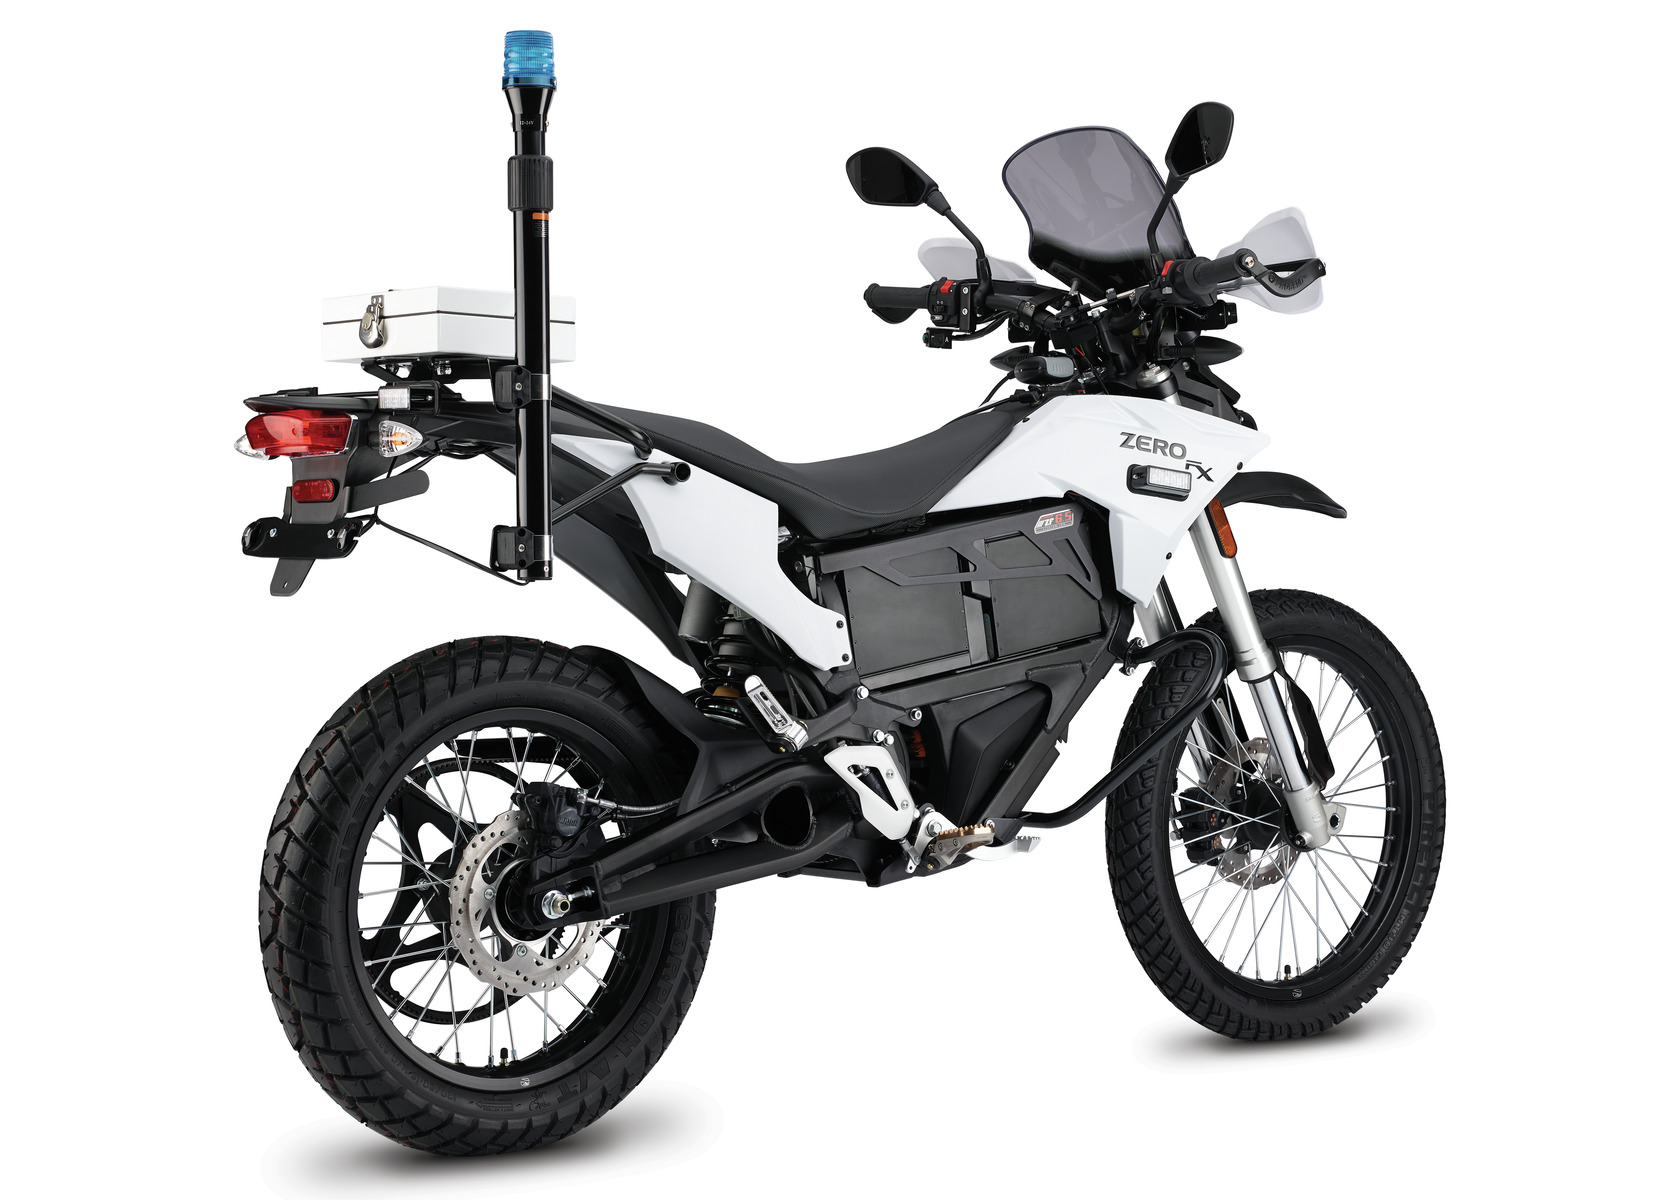 2016 Zero FXP Electric Motorcycle: Left Angle, White Background